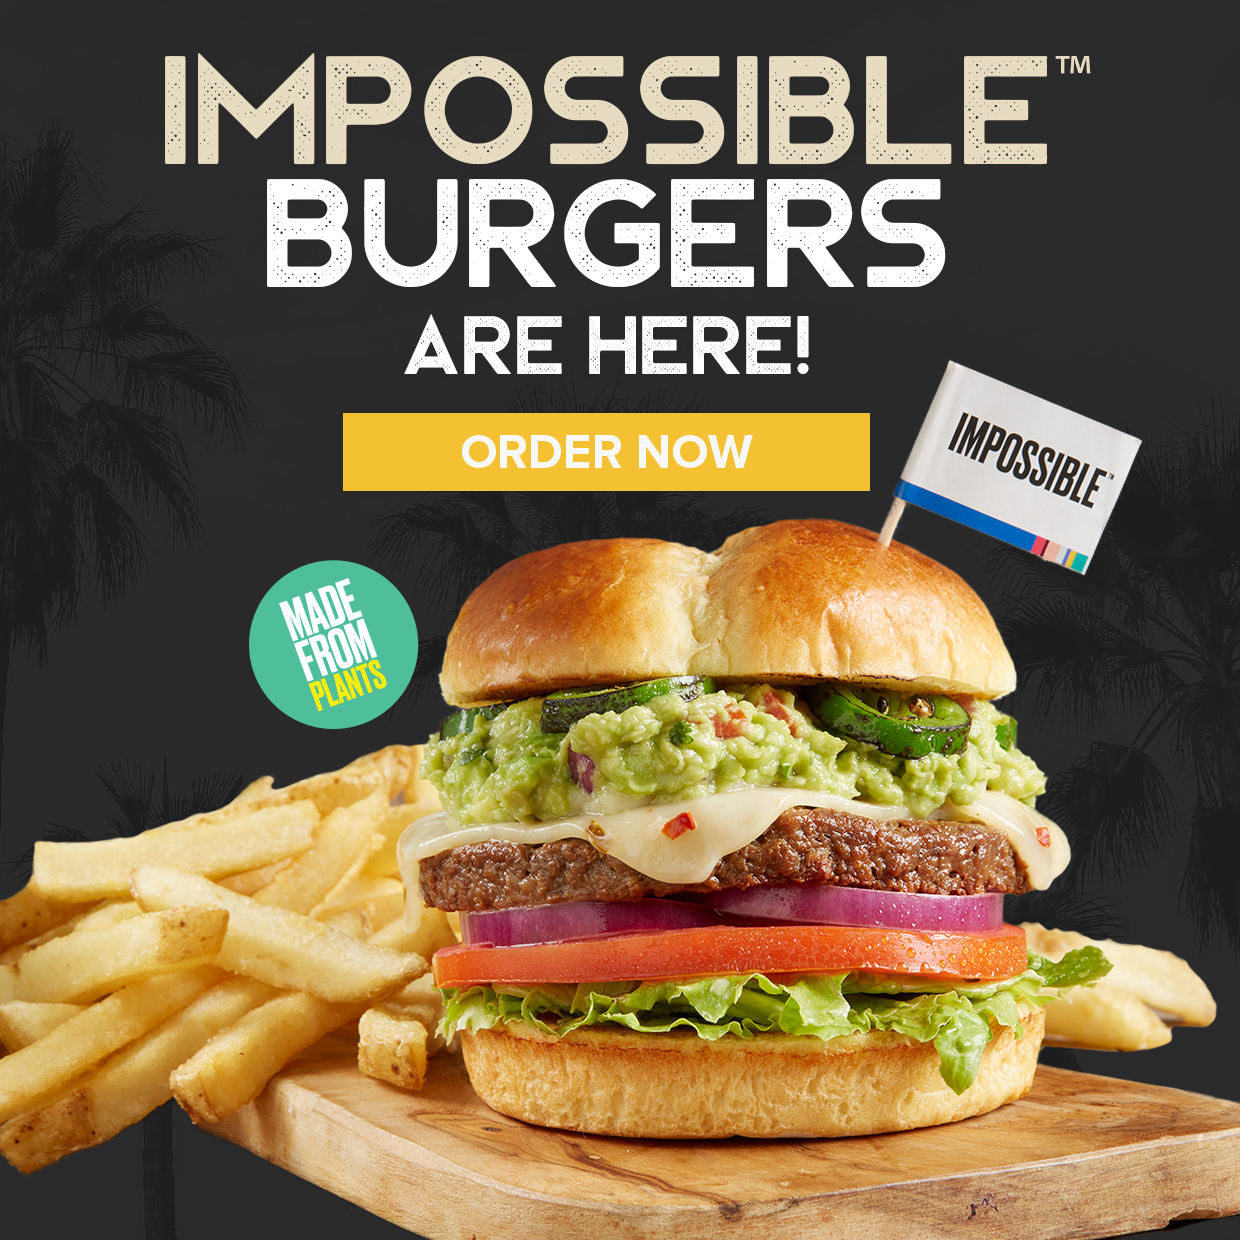 Impossible Burgers. You can now make any burger and Impossible Burger Made from Plants for Meat Lovers. Order now.